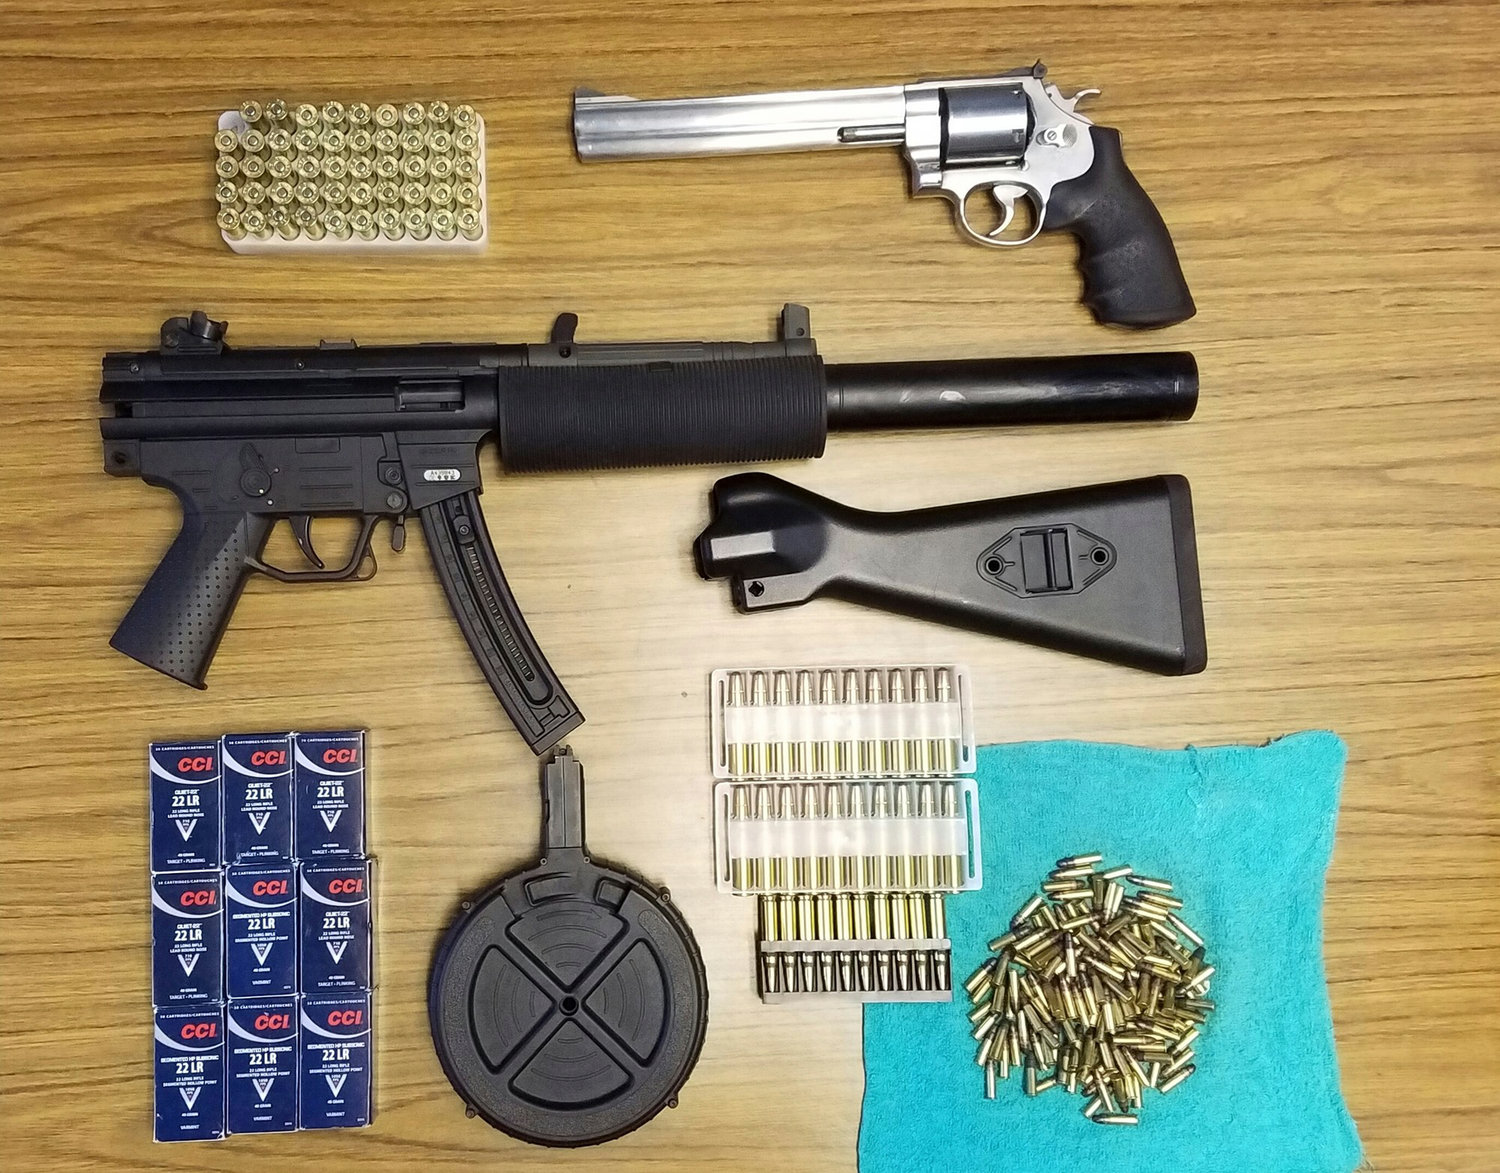 State law enforcement officials said they recovered seven weapons, some of which were illegally sold in Valley Stream, during an investigation of a gun trafficking ring.